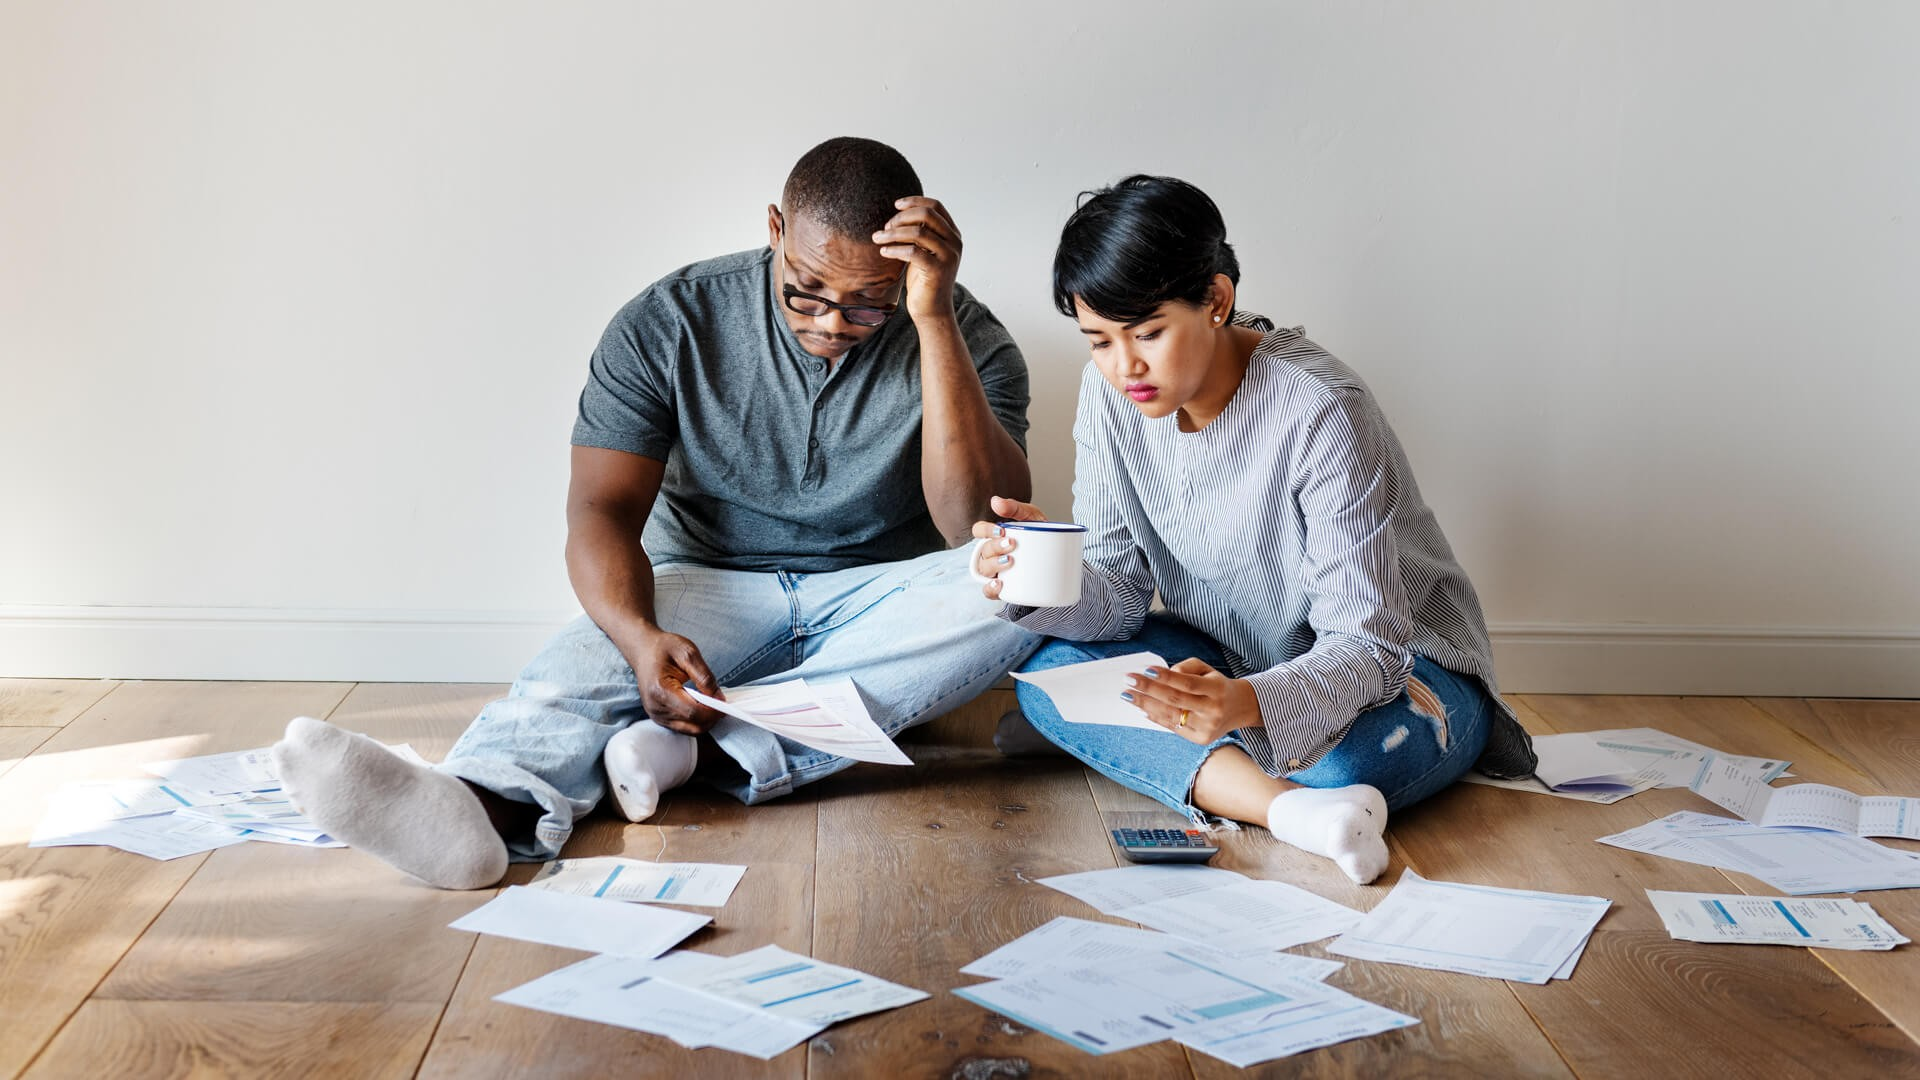 Couple-sitting-on-floor-managing-finance-documents